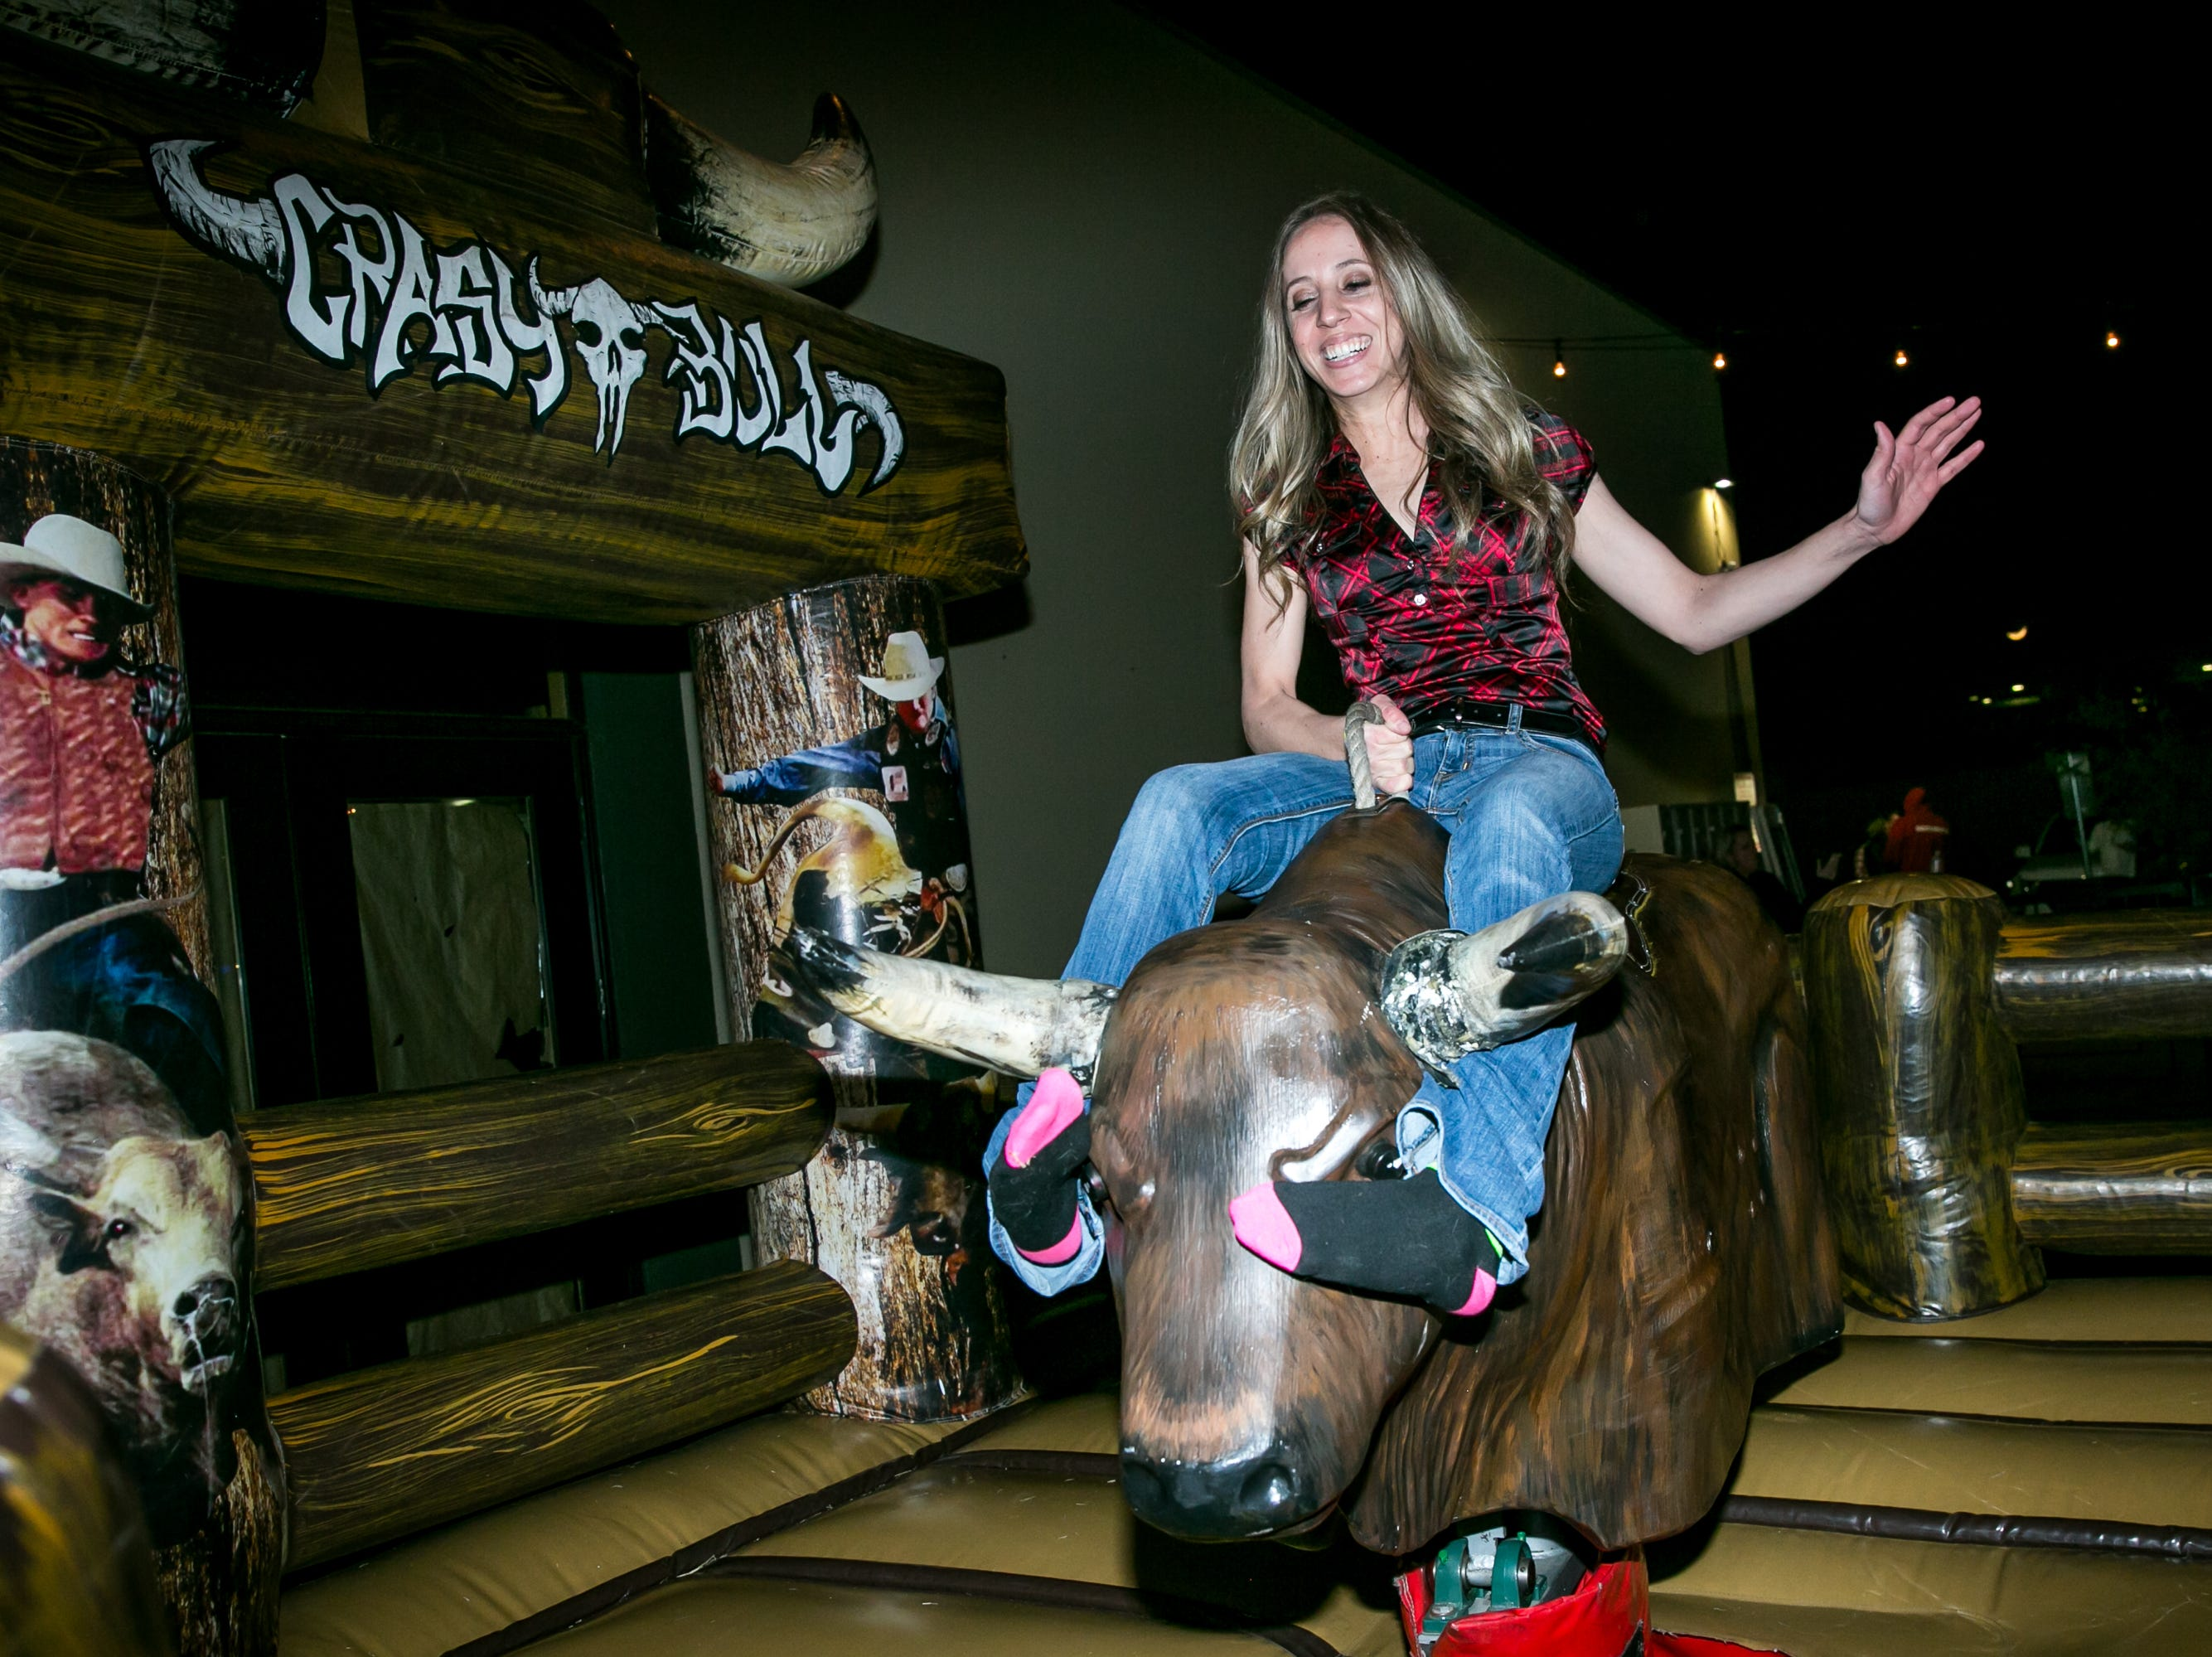 She tamed the mechanical bull during the KMLE Country 90's Throwback at The Van Buren on Friday, Jan. 11, 2019.